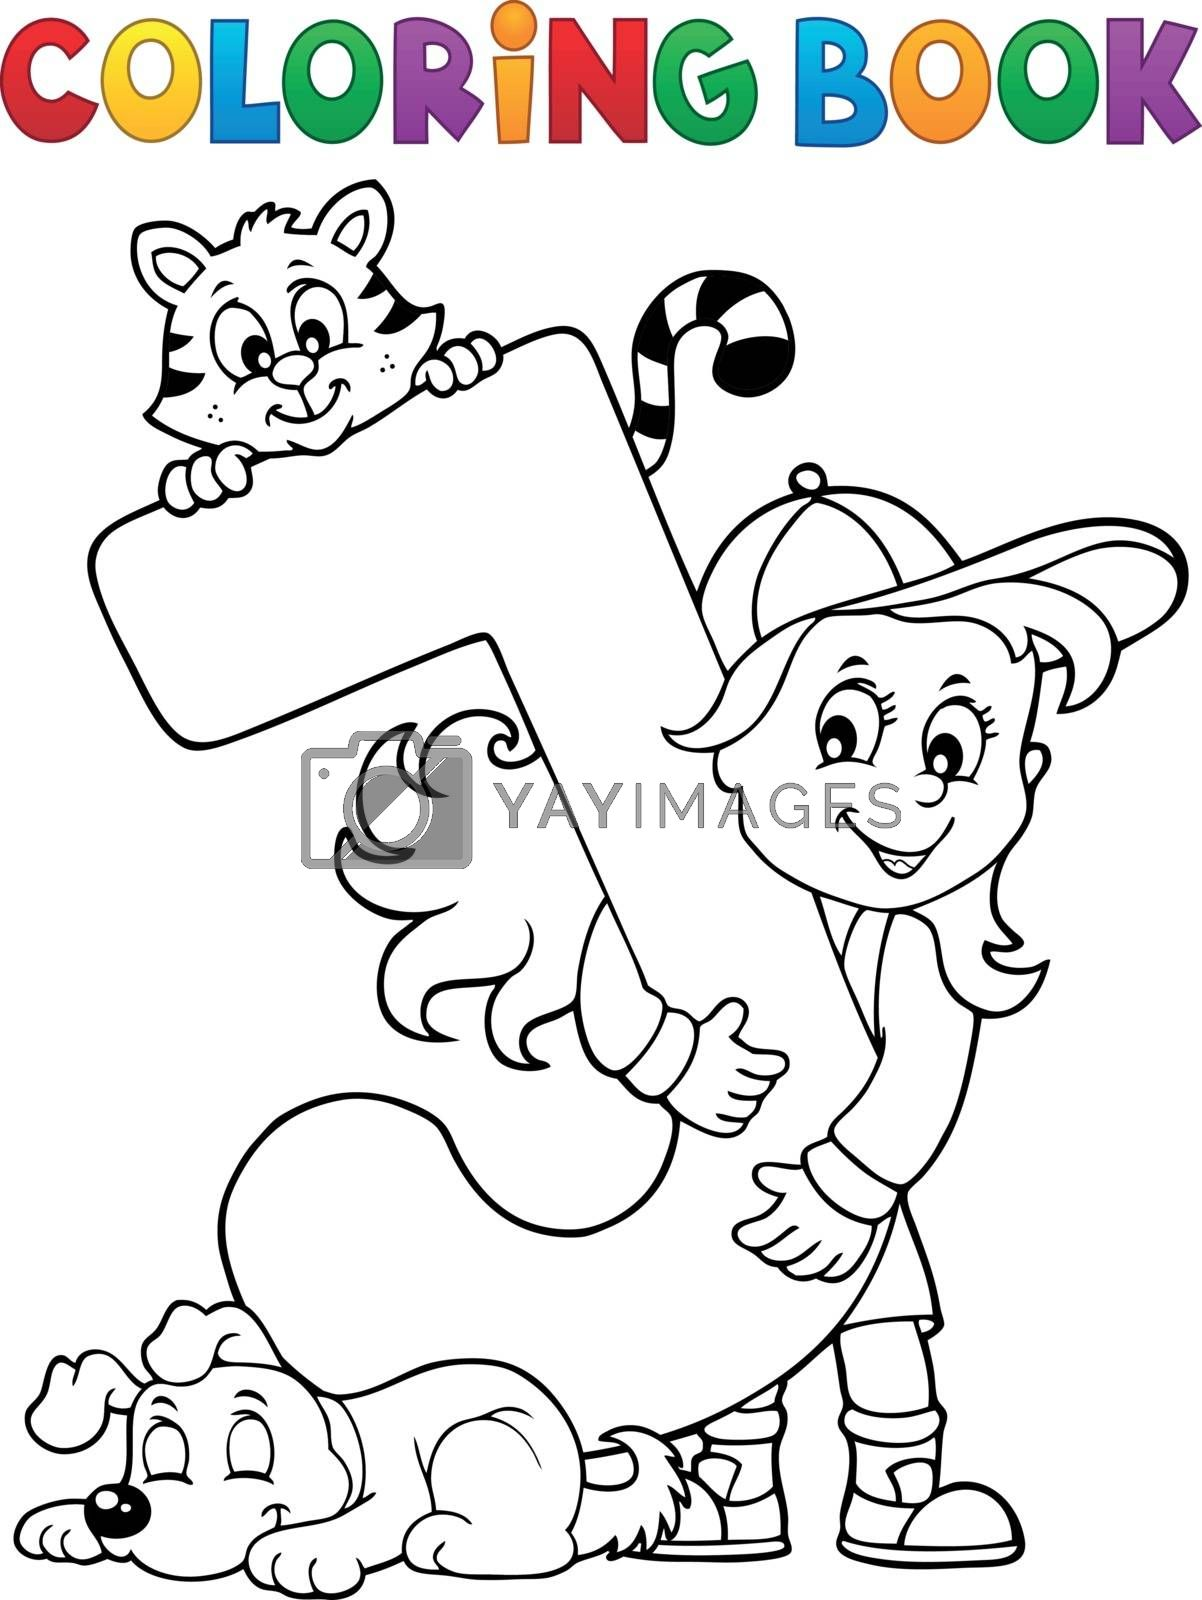 Coloring book girl and pets by letter J - eps10 vector illustration.